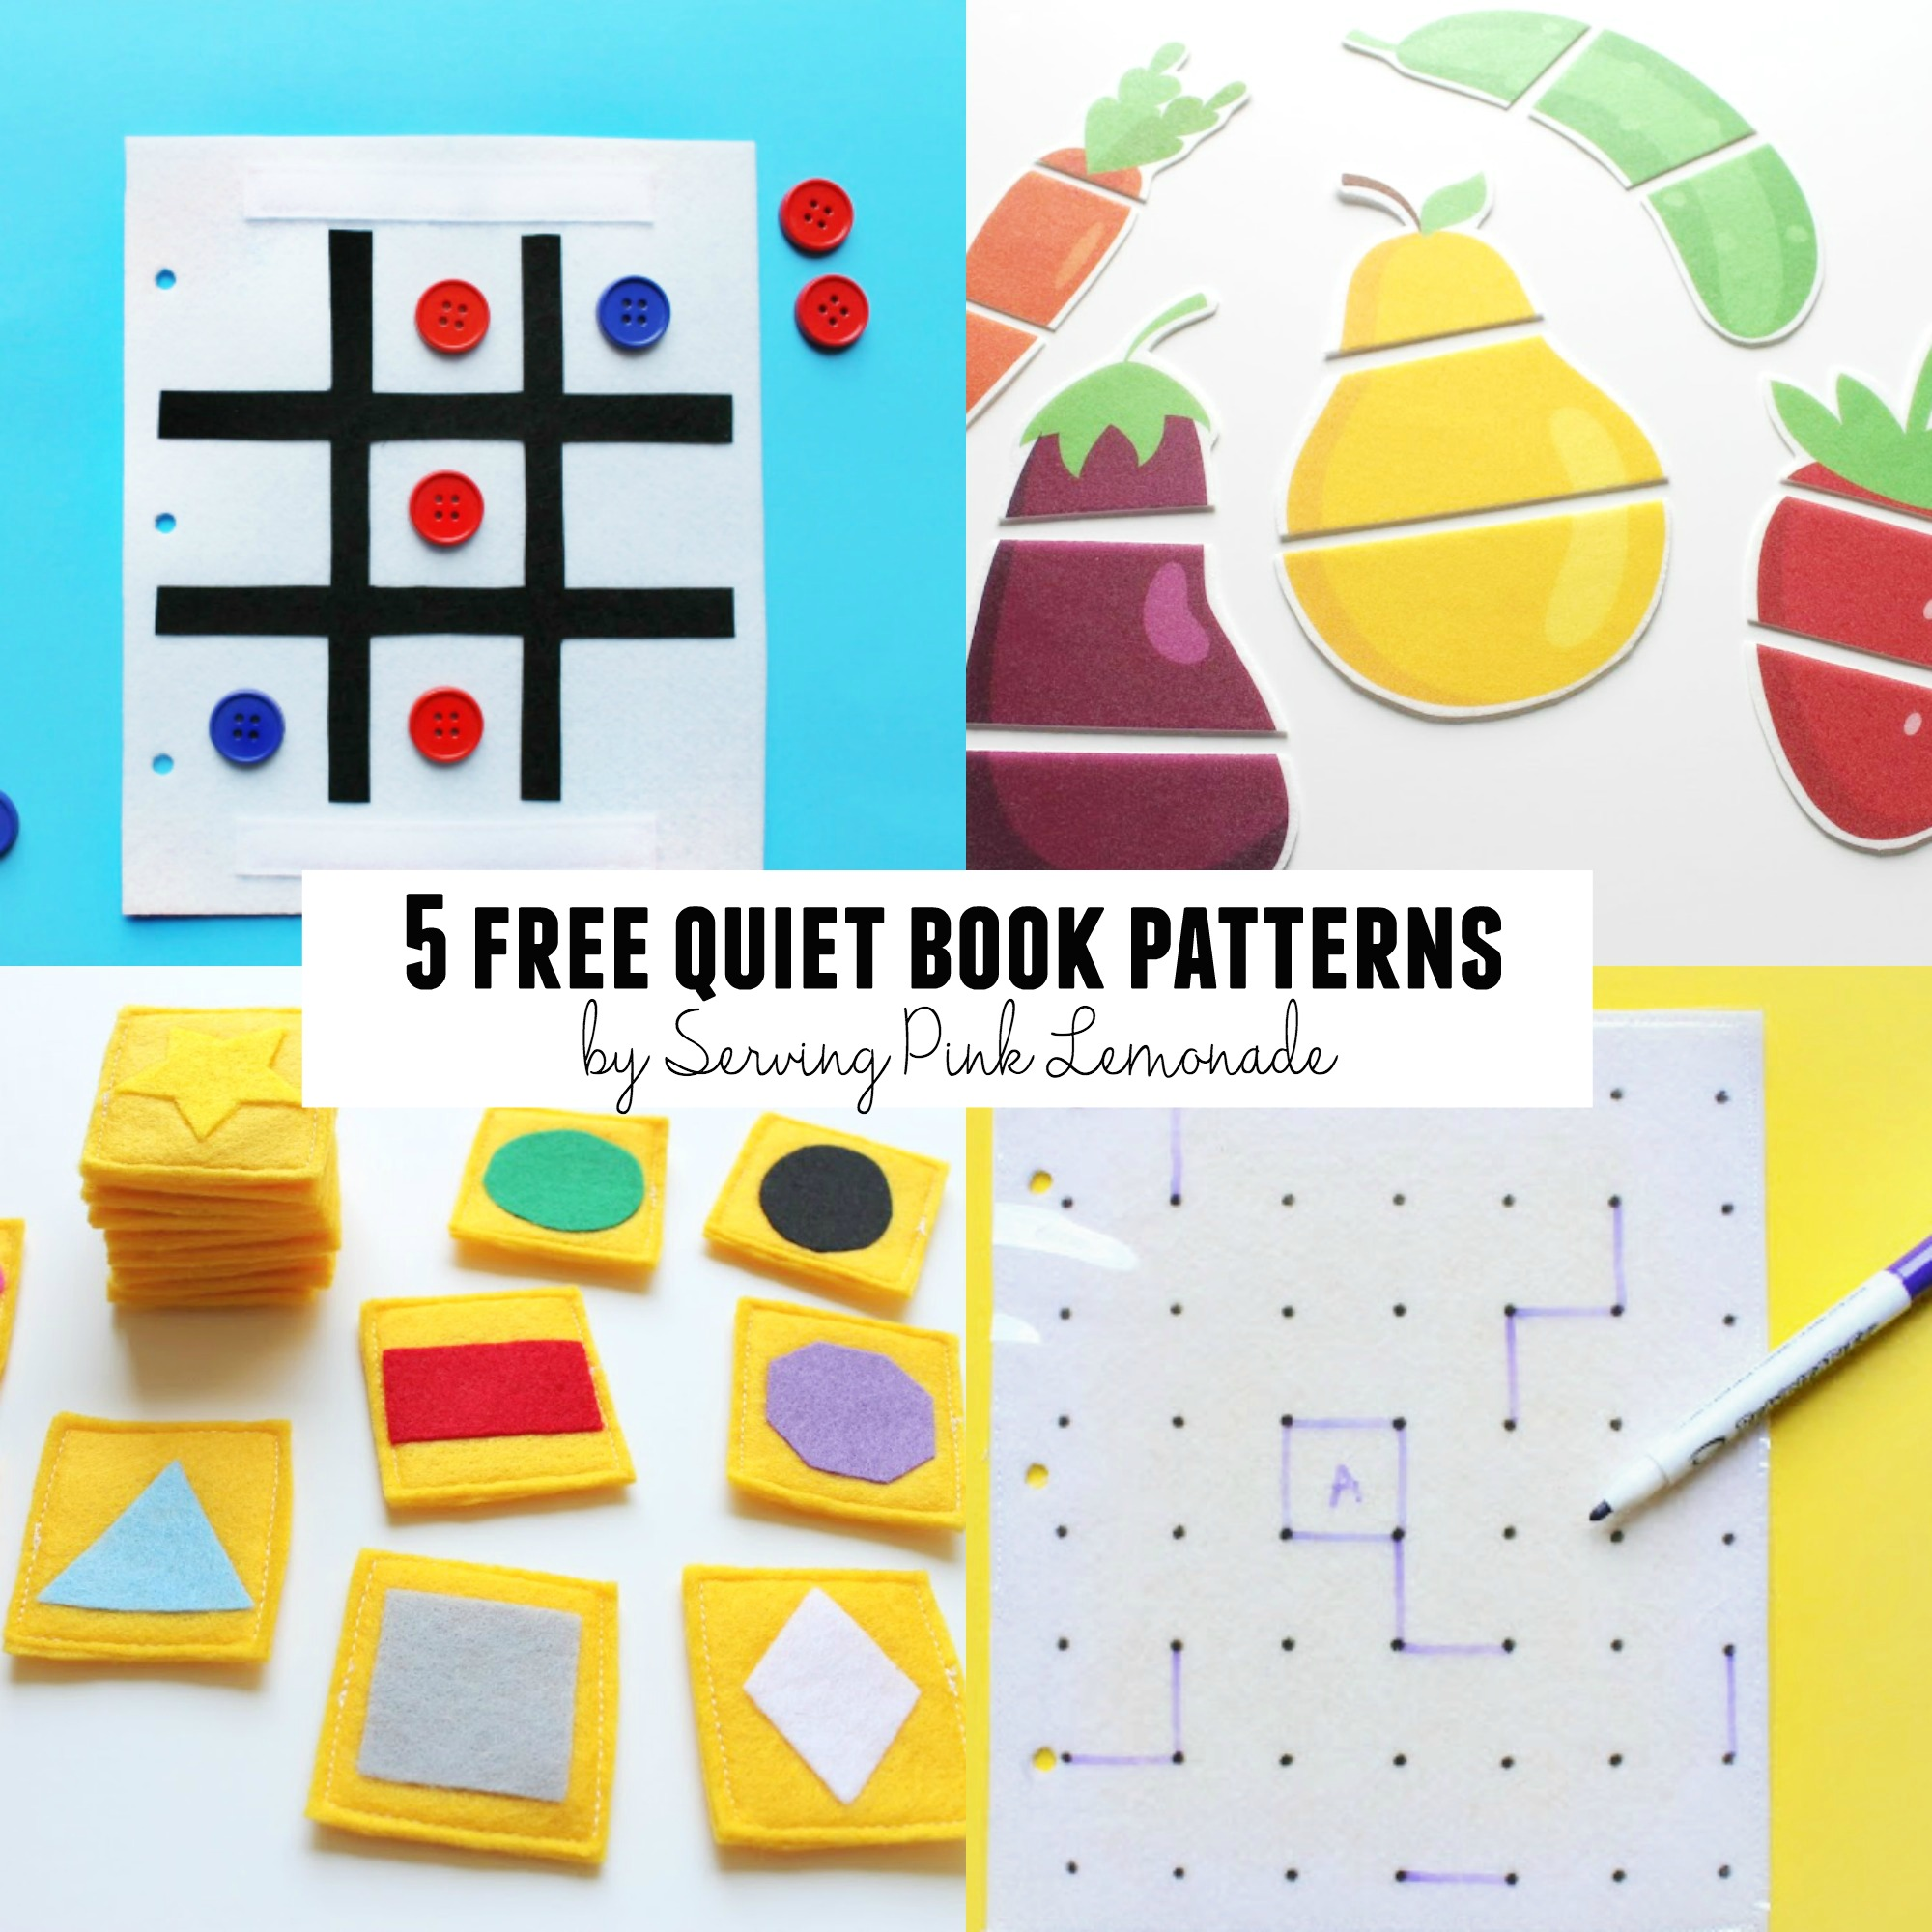 photograph regarding Printable Quiet Book Templates identified as Basic Tranquil E-book Collection Very simple Puzzles - U Establish